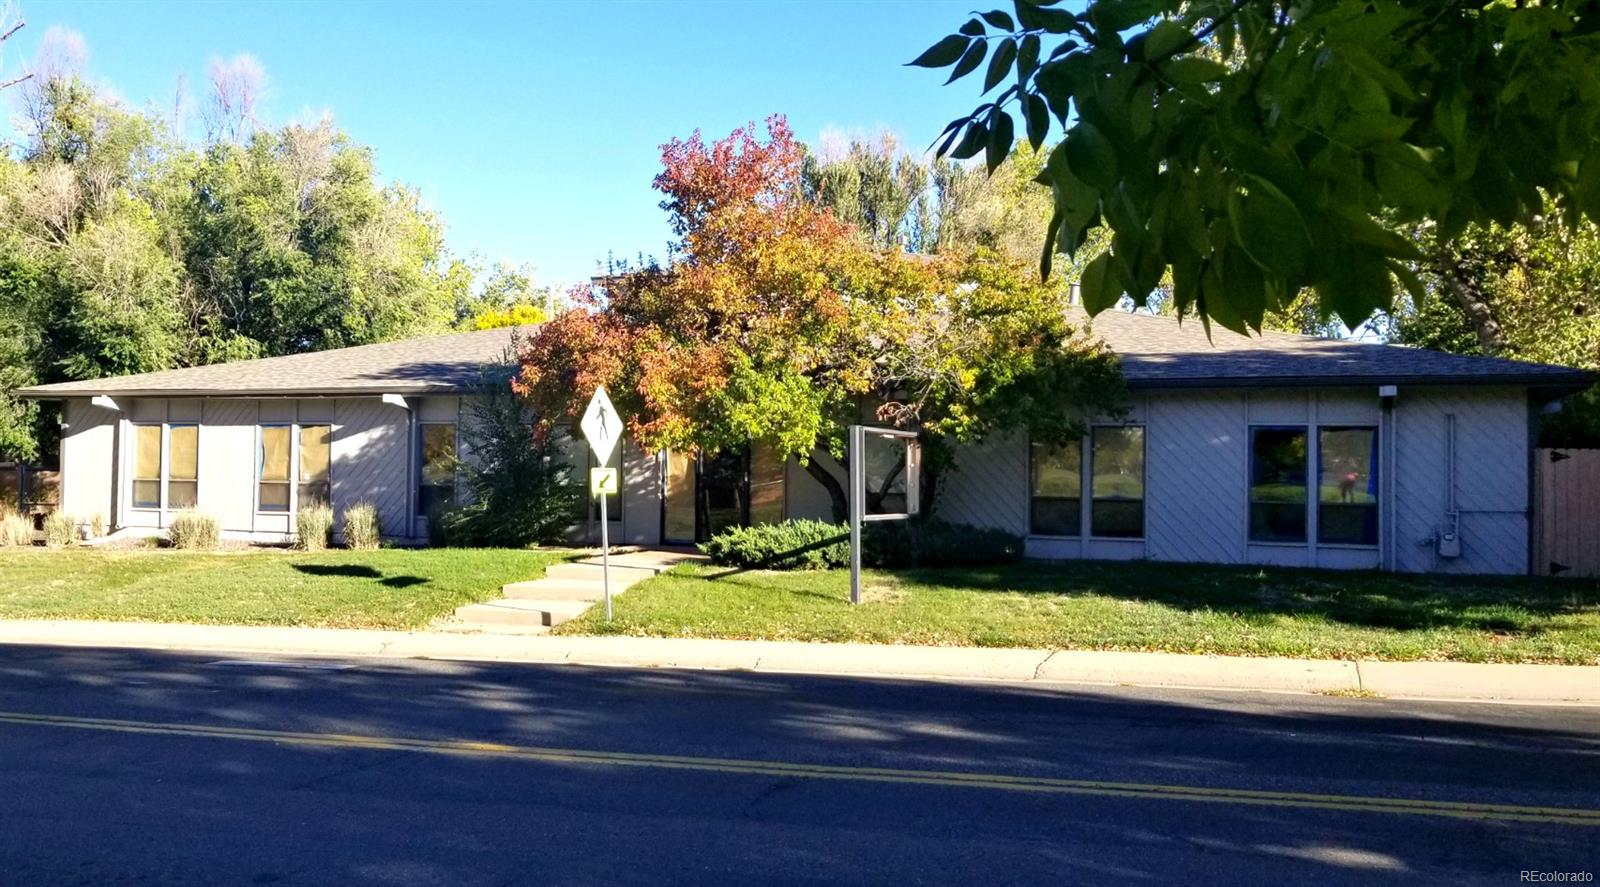 7798 Vance Drive, Arvada, CO 80003 - Arvada, CO real estate listing